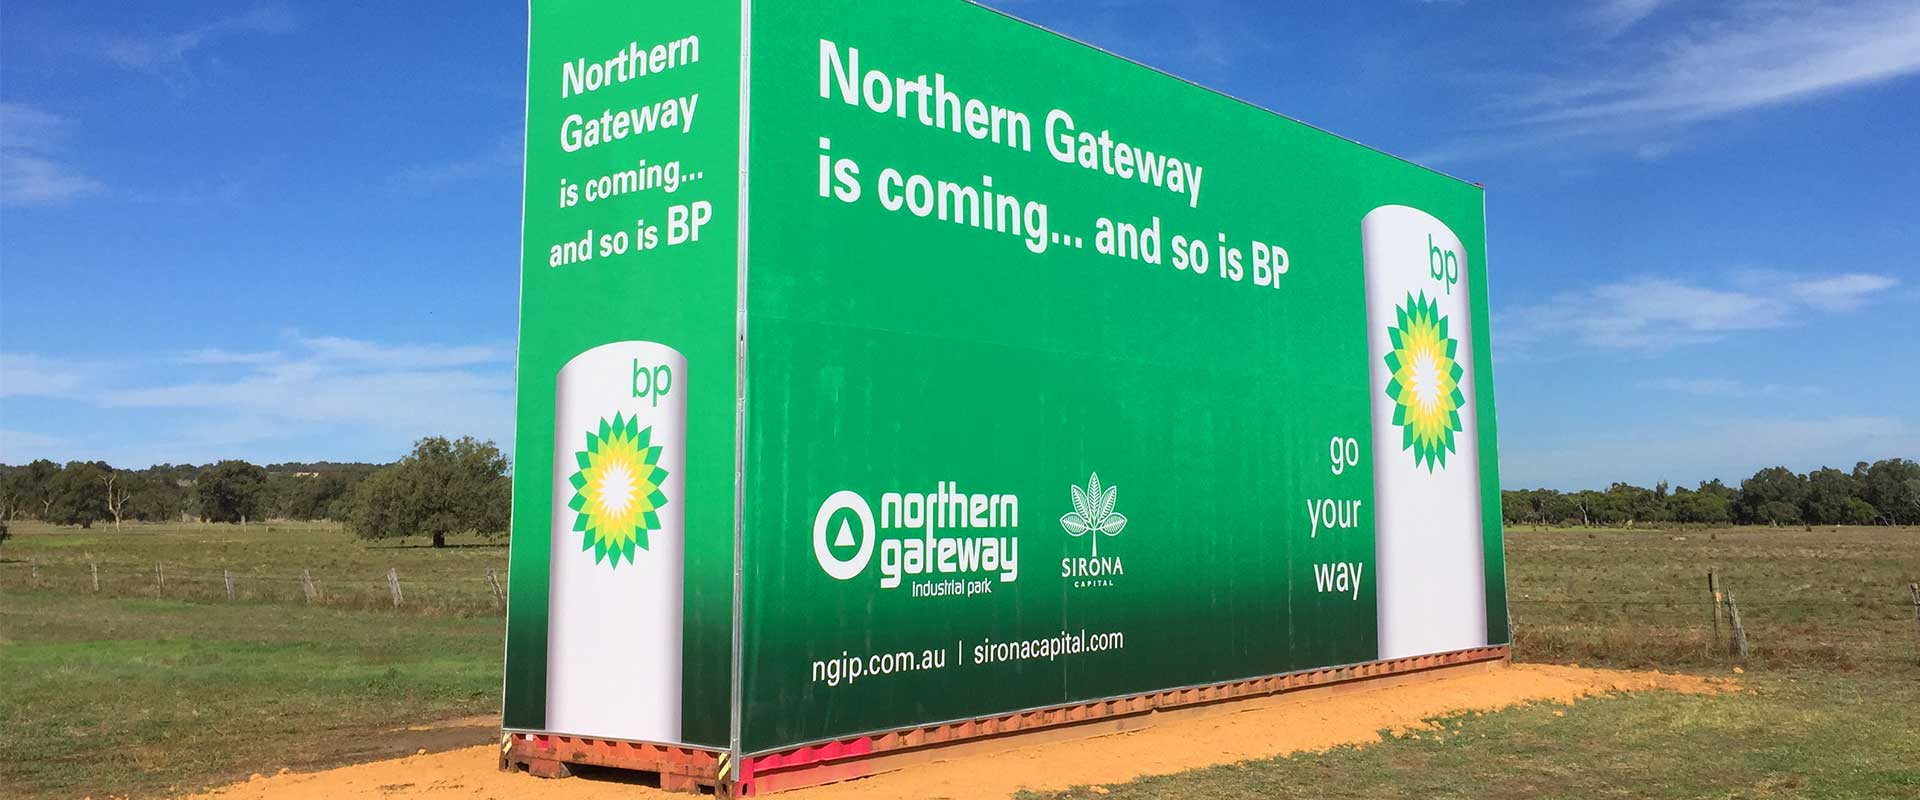 banner printing perth - Sea container sign for BP by Imagesource